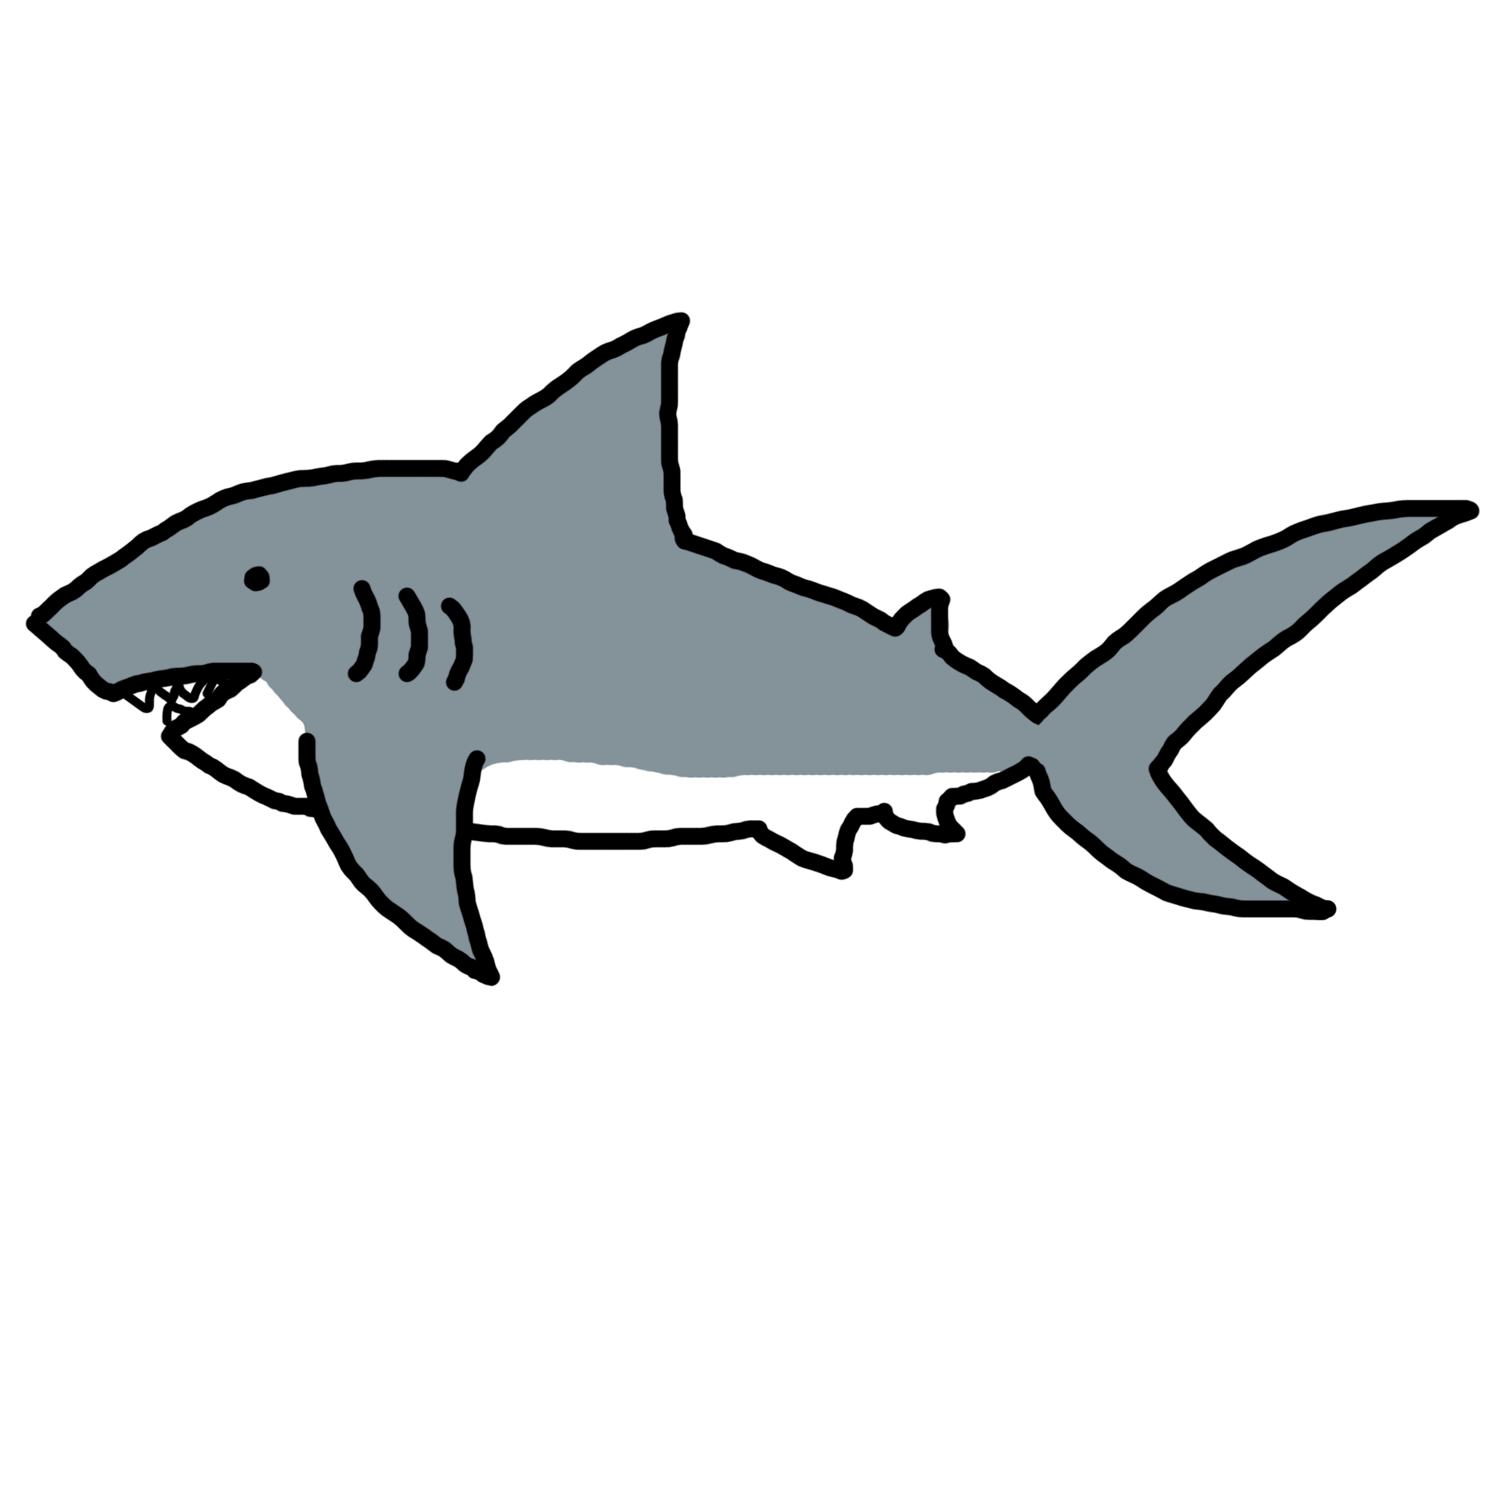 1500x1500 Shark Clip Art Black And White Free Clipart Images